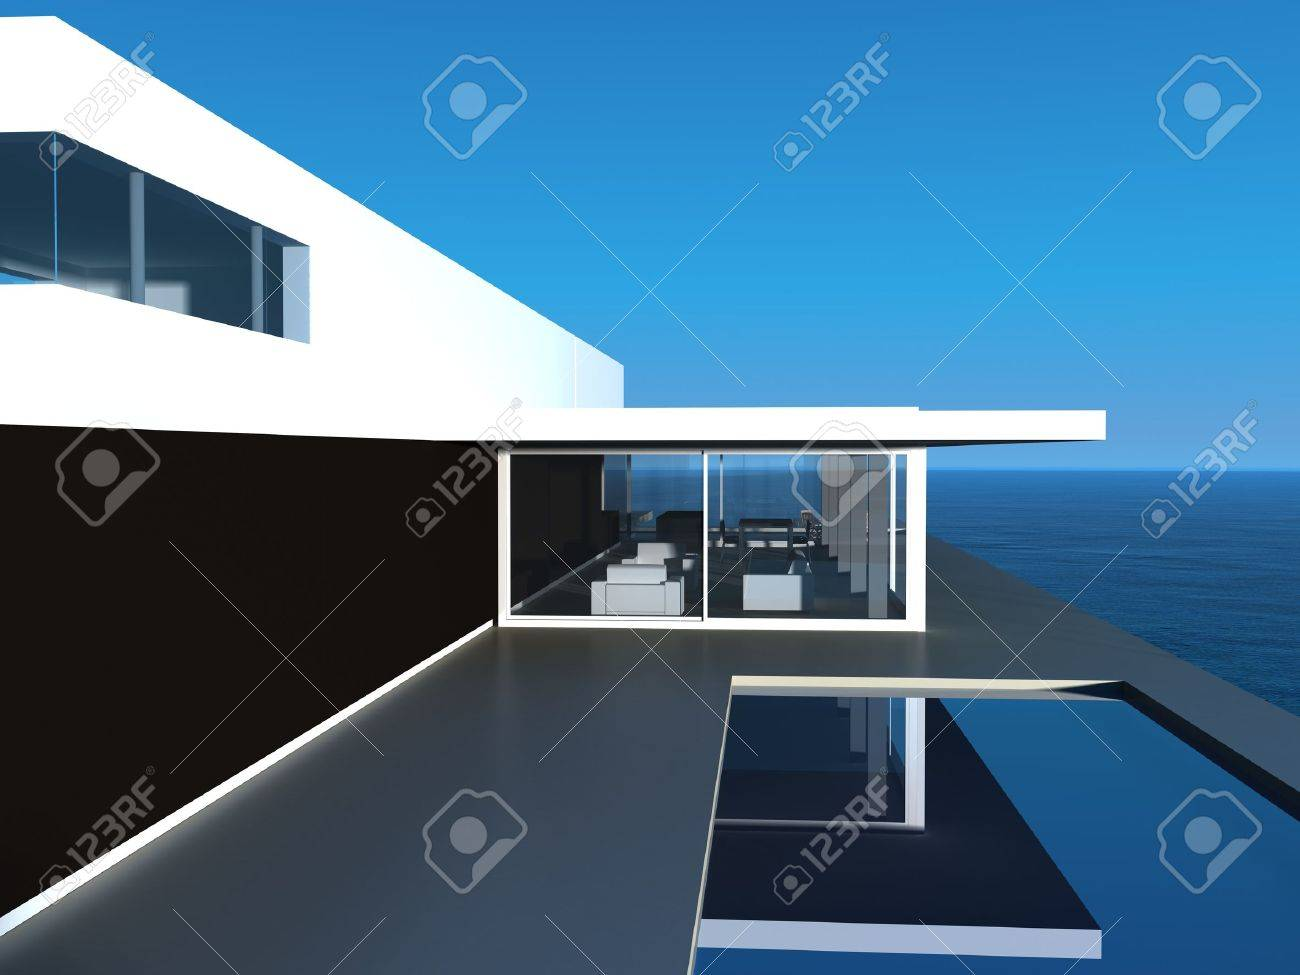 Modern Design villa with pool and seascape view Stock Photo - 19532998